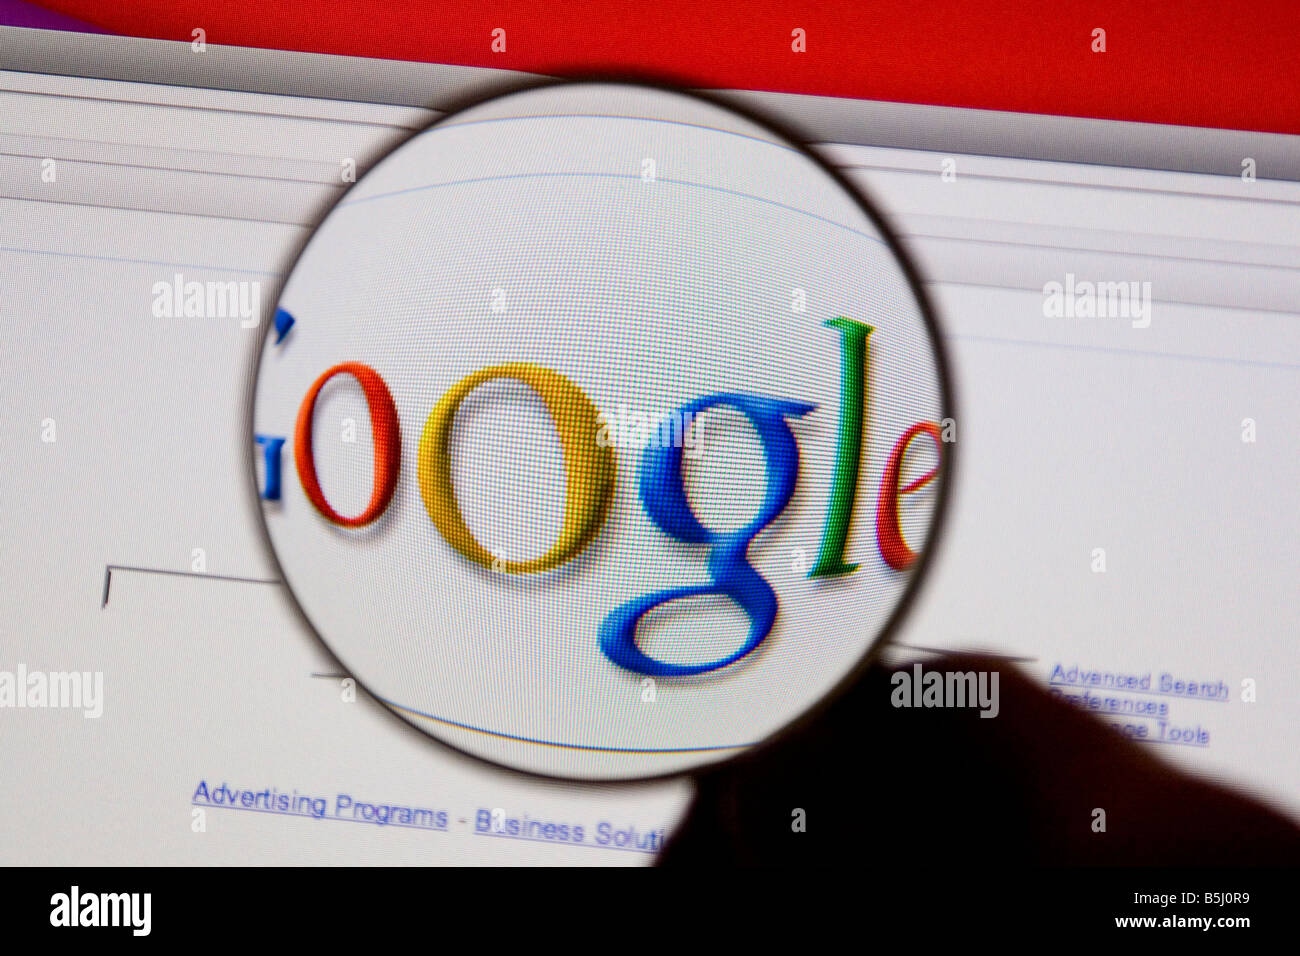 Google logo on a computer screen with a magnifying glass. - Stock Image